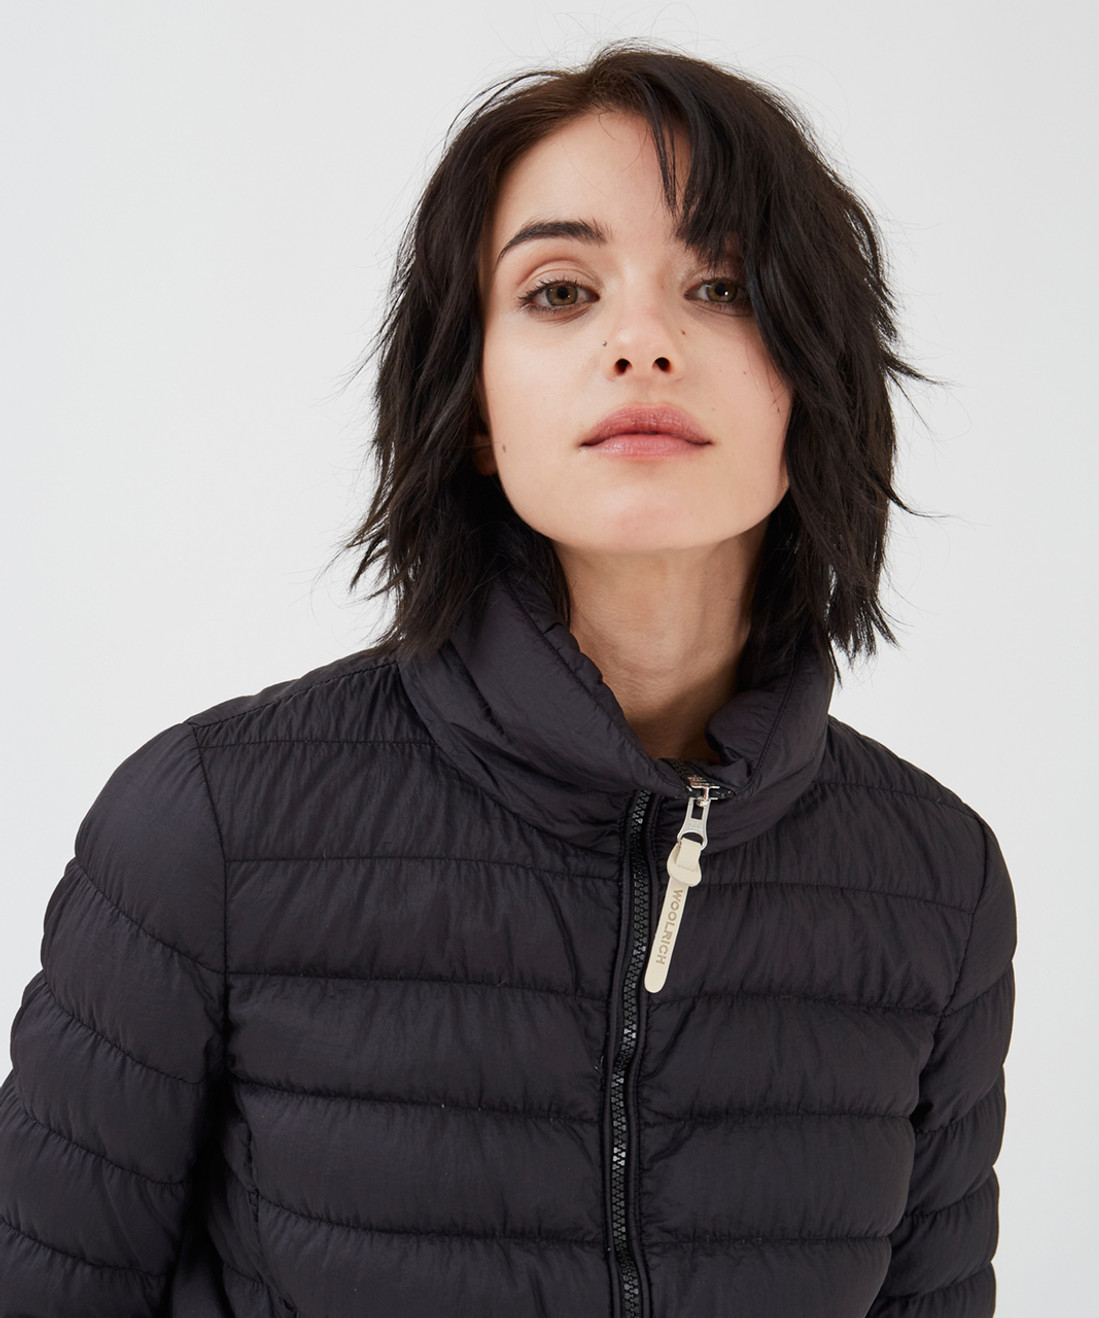 Women's Mercer Bomber Jacket - John Rich & Bros.